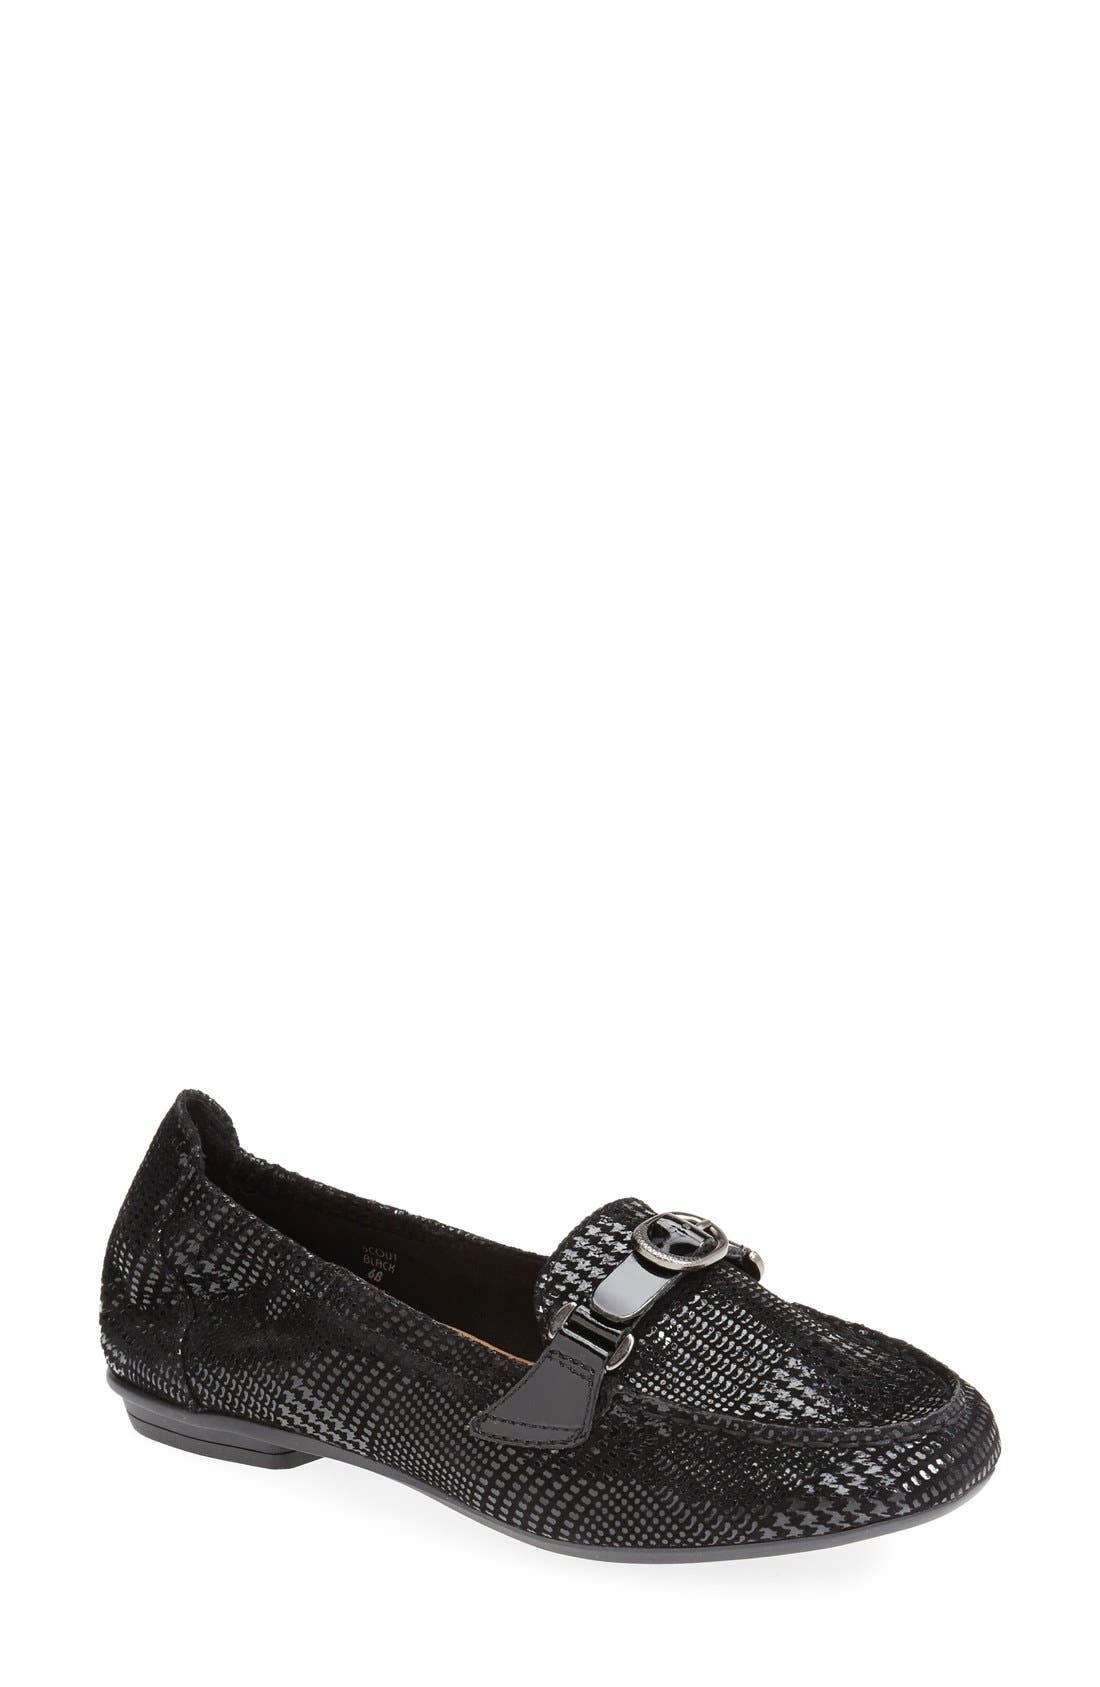 Alternate Image 1 Selected - Earth® 'Scout' Loafer (Women)